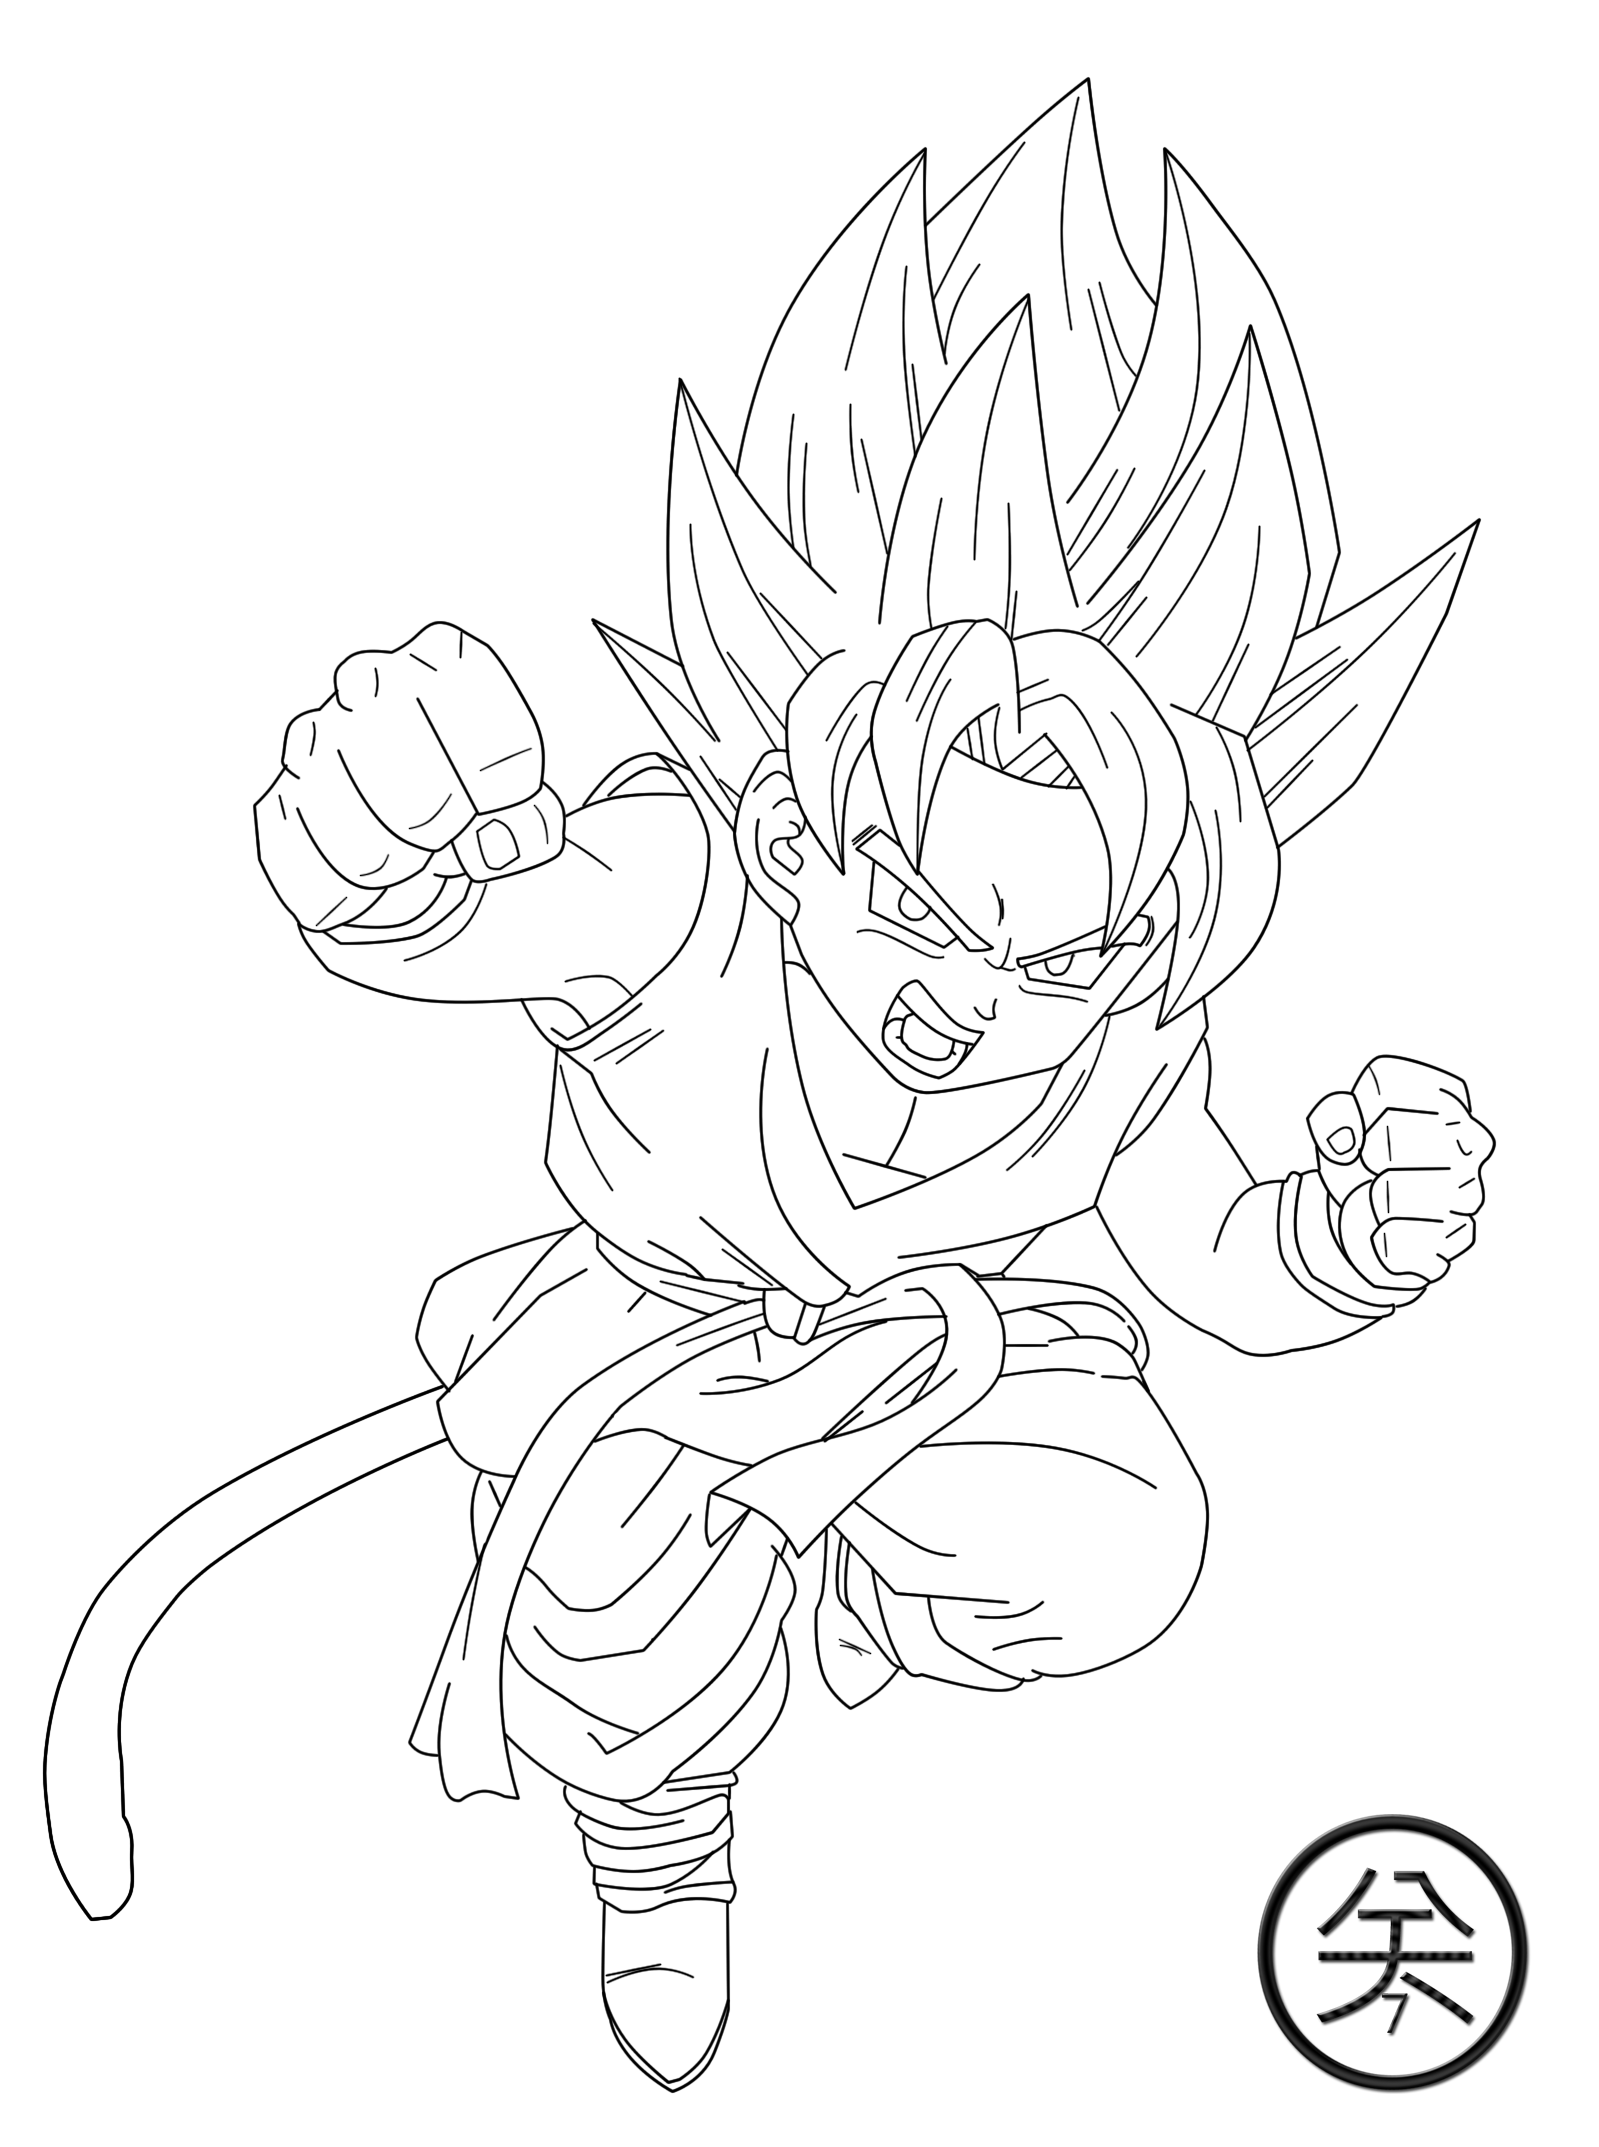 goku ss4 coloring pages goku ssj4 pages coloring pages coloring pages goku ss4